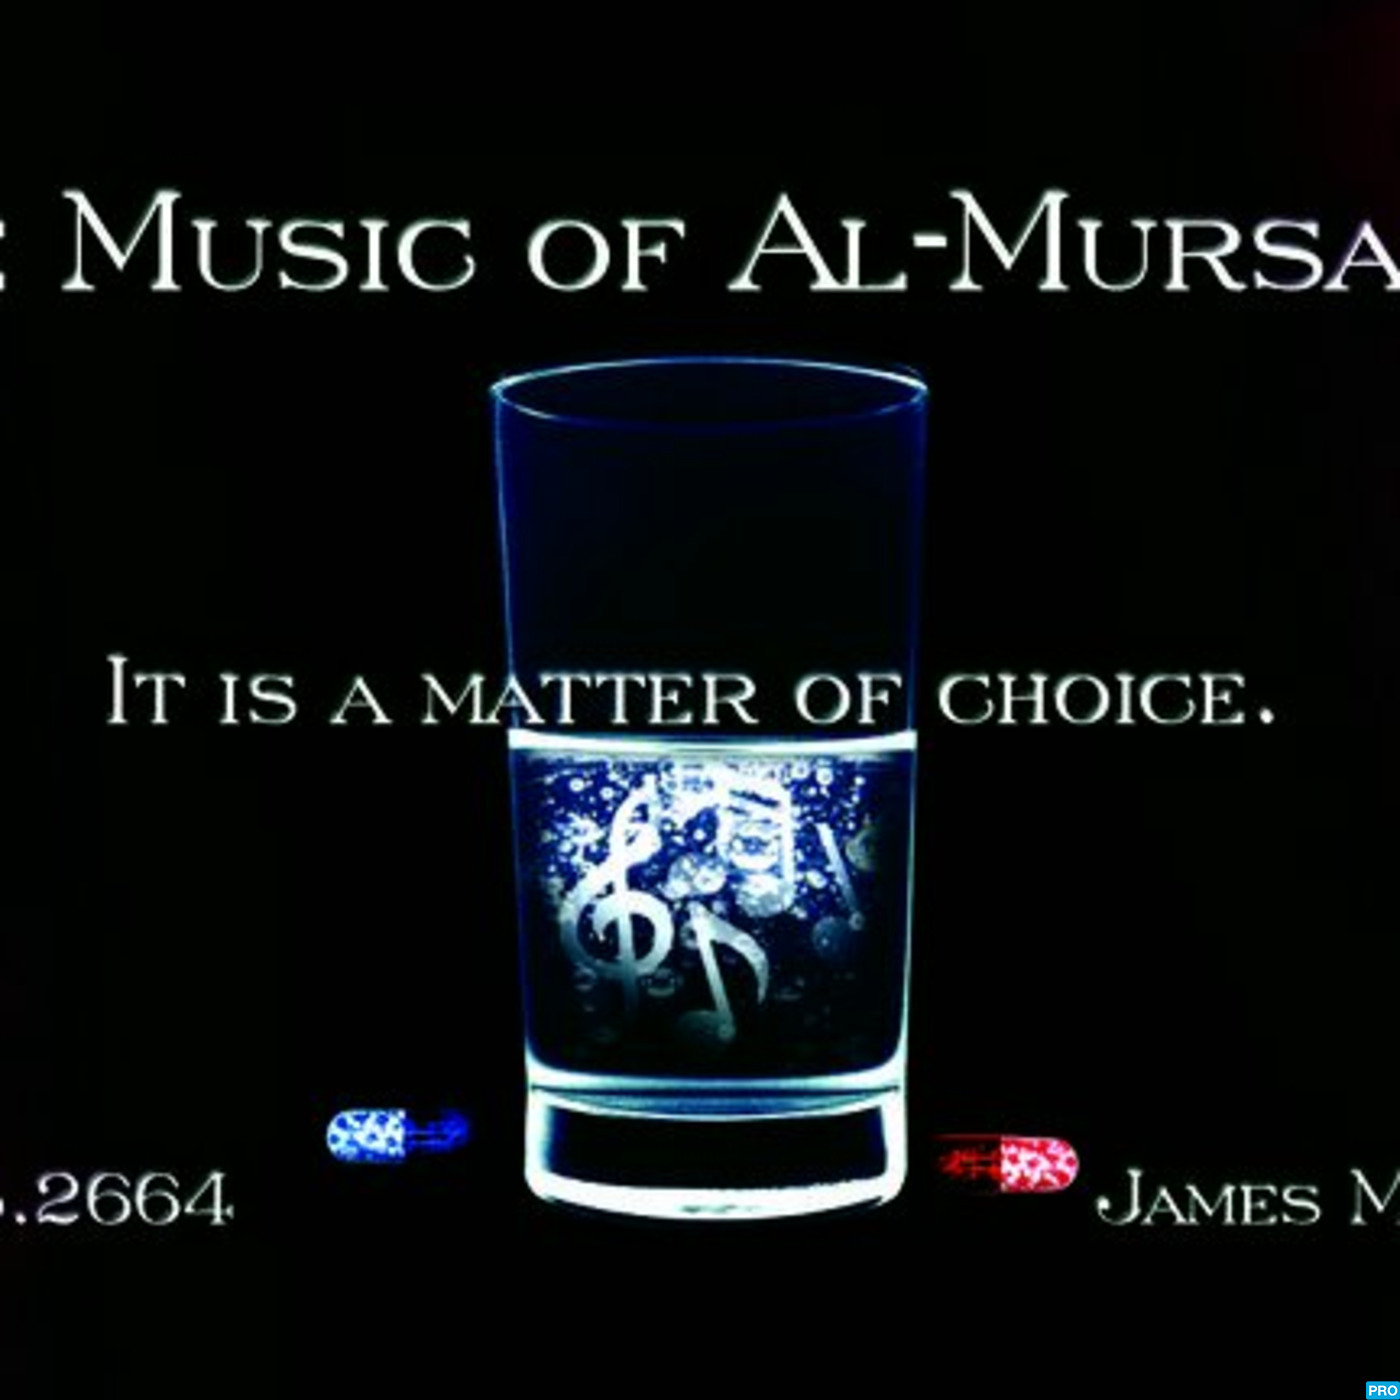 the music of al-mursalat